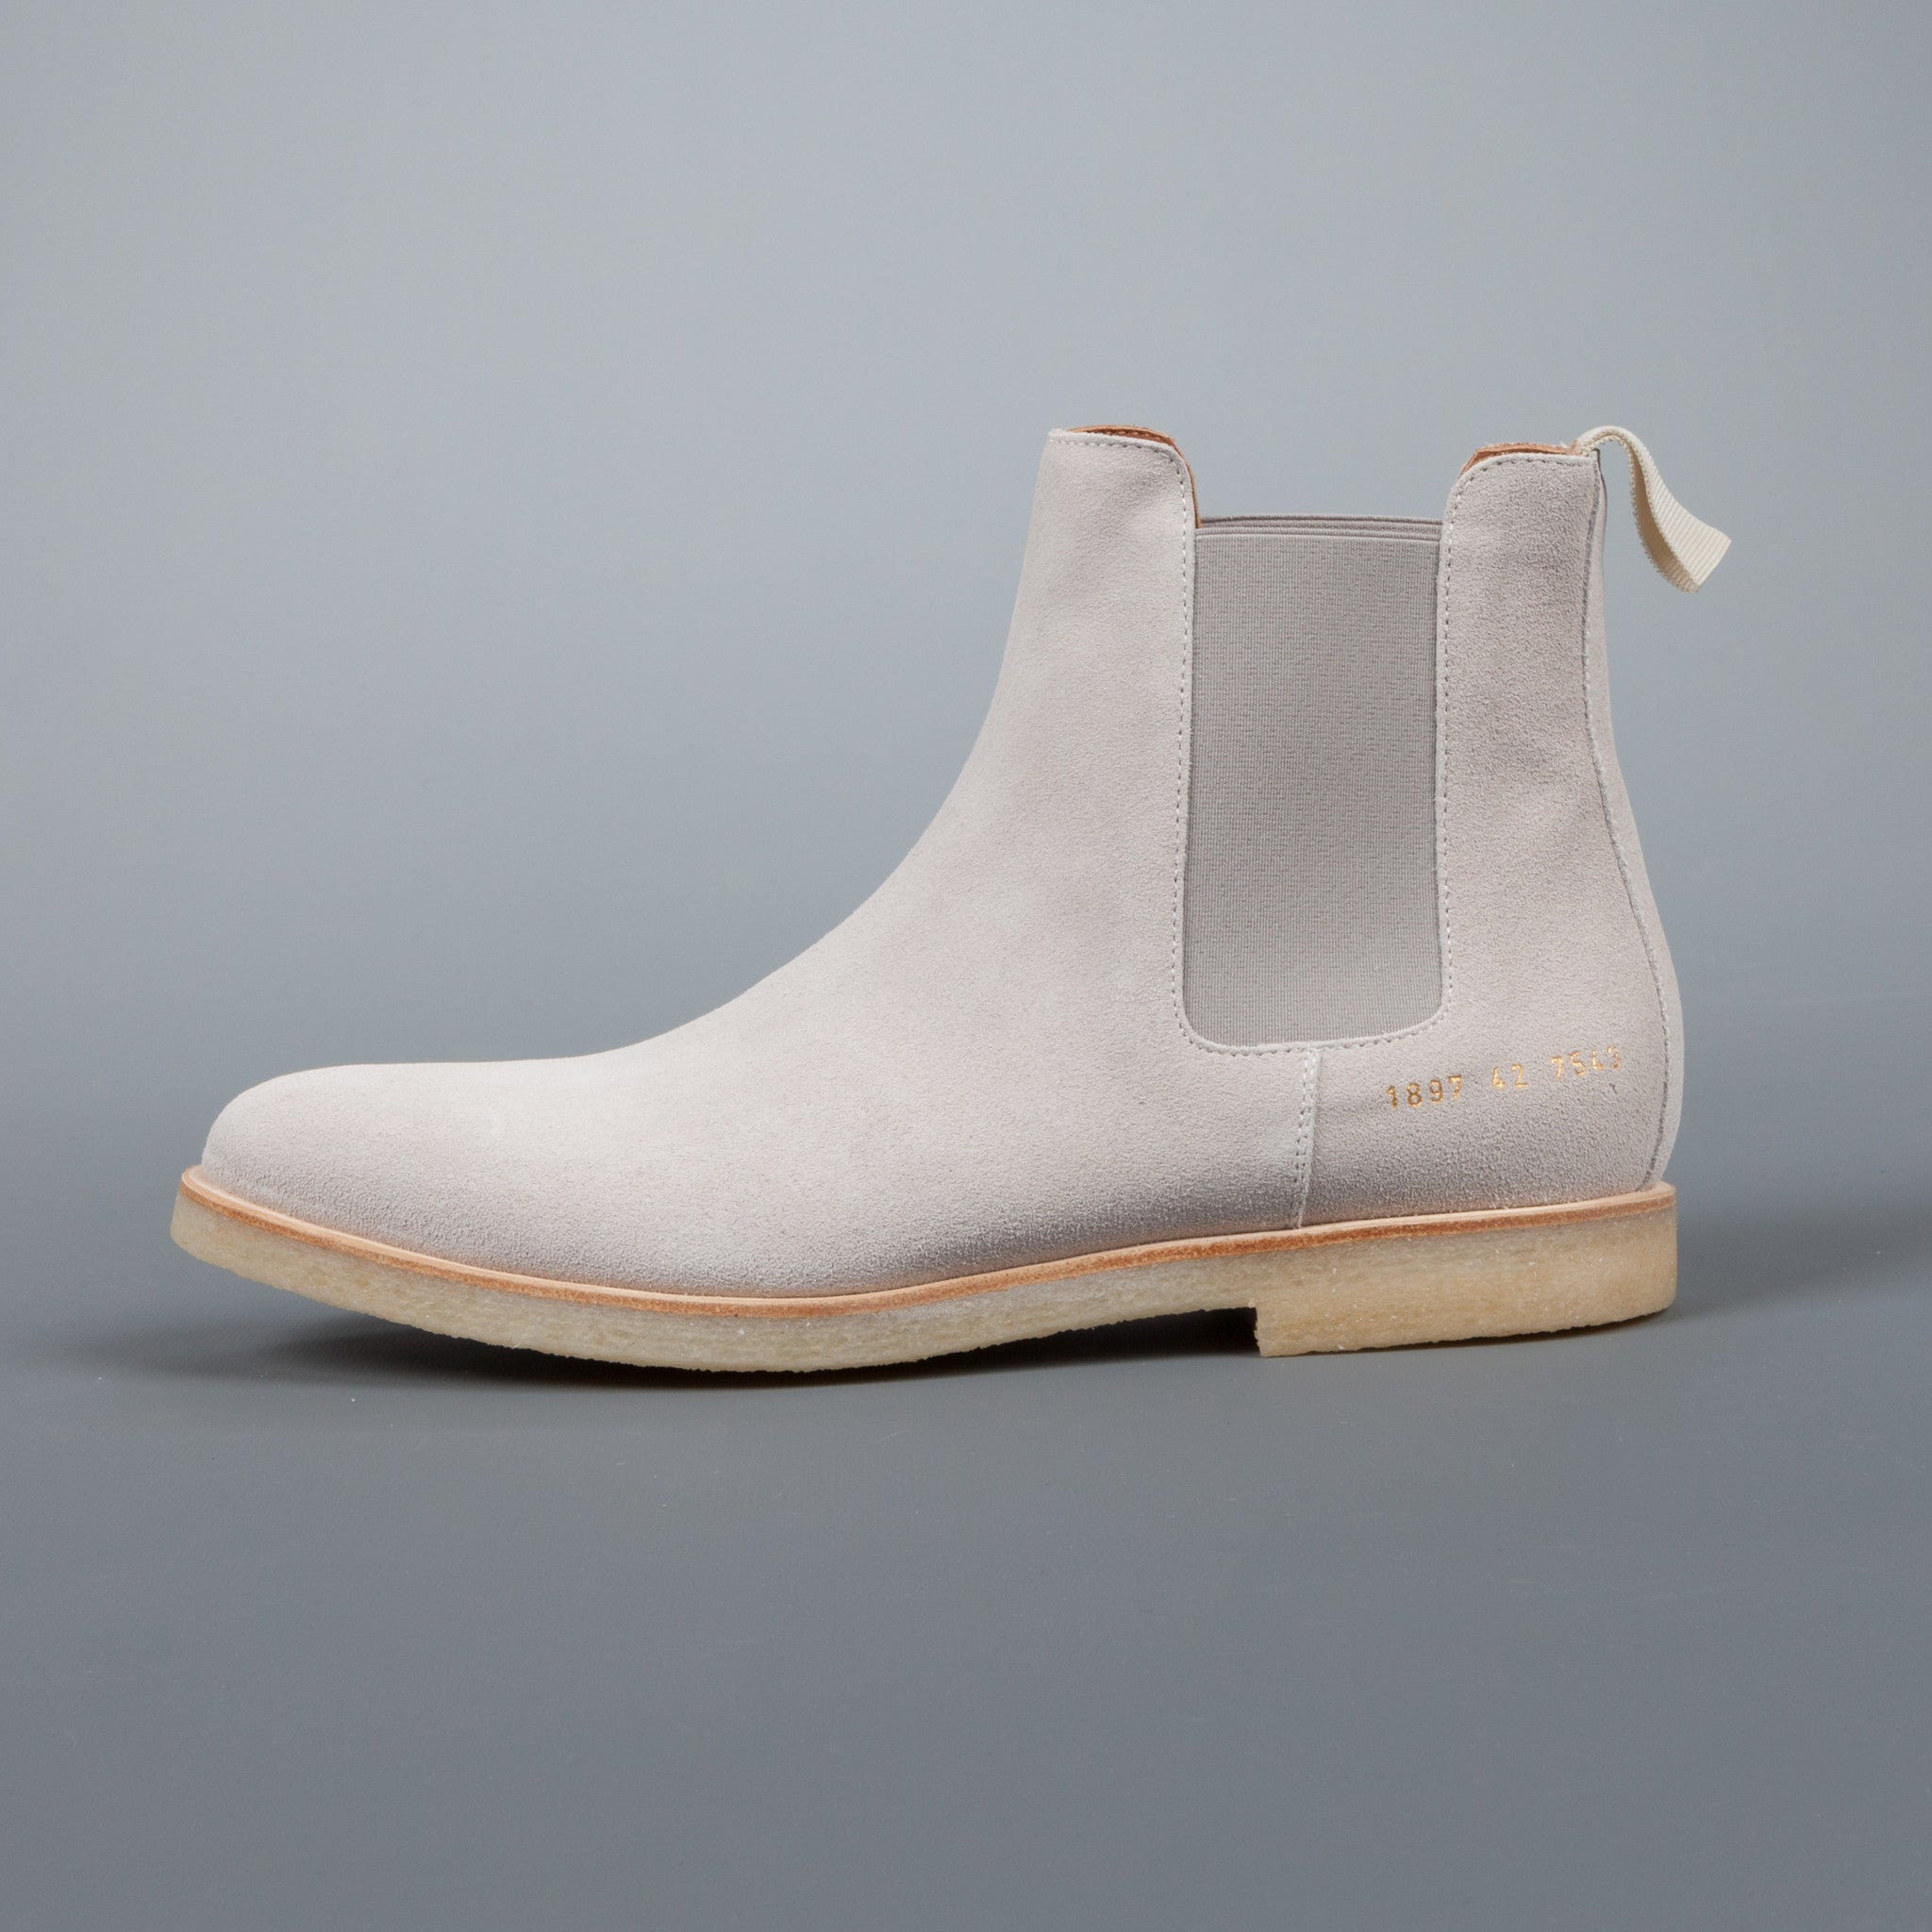 common projects 1897 chelsea boot 7543 grey frans boone store. Black Bedroom Furniture Sets. Home Design Ideas